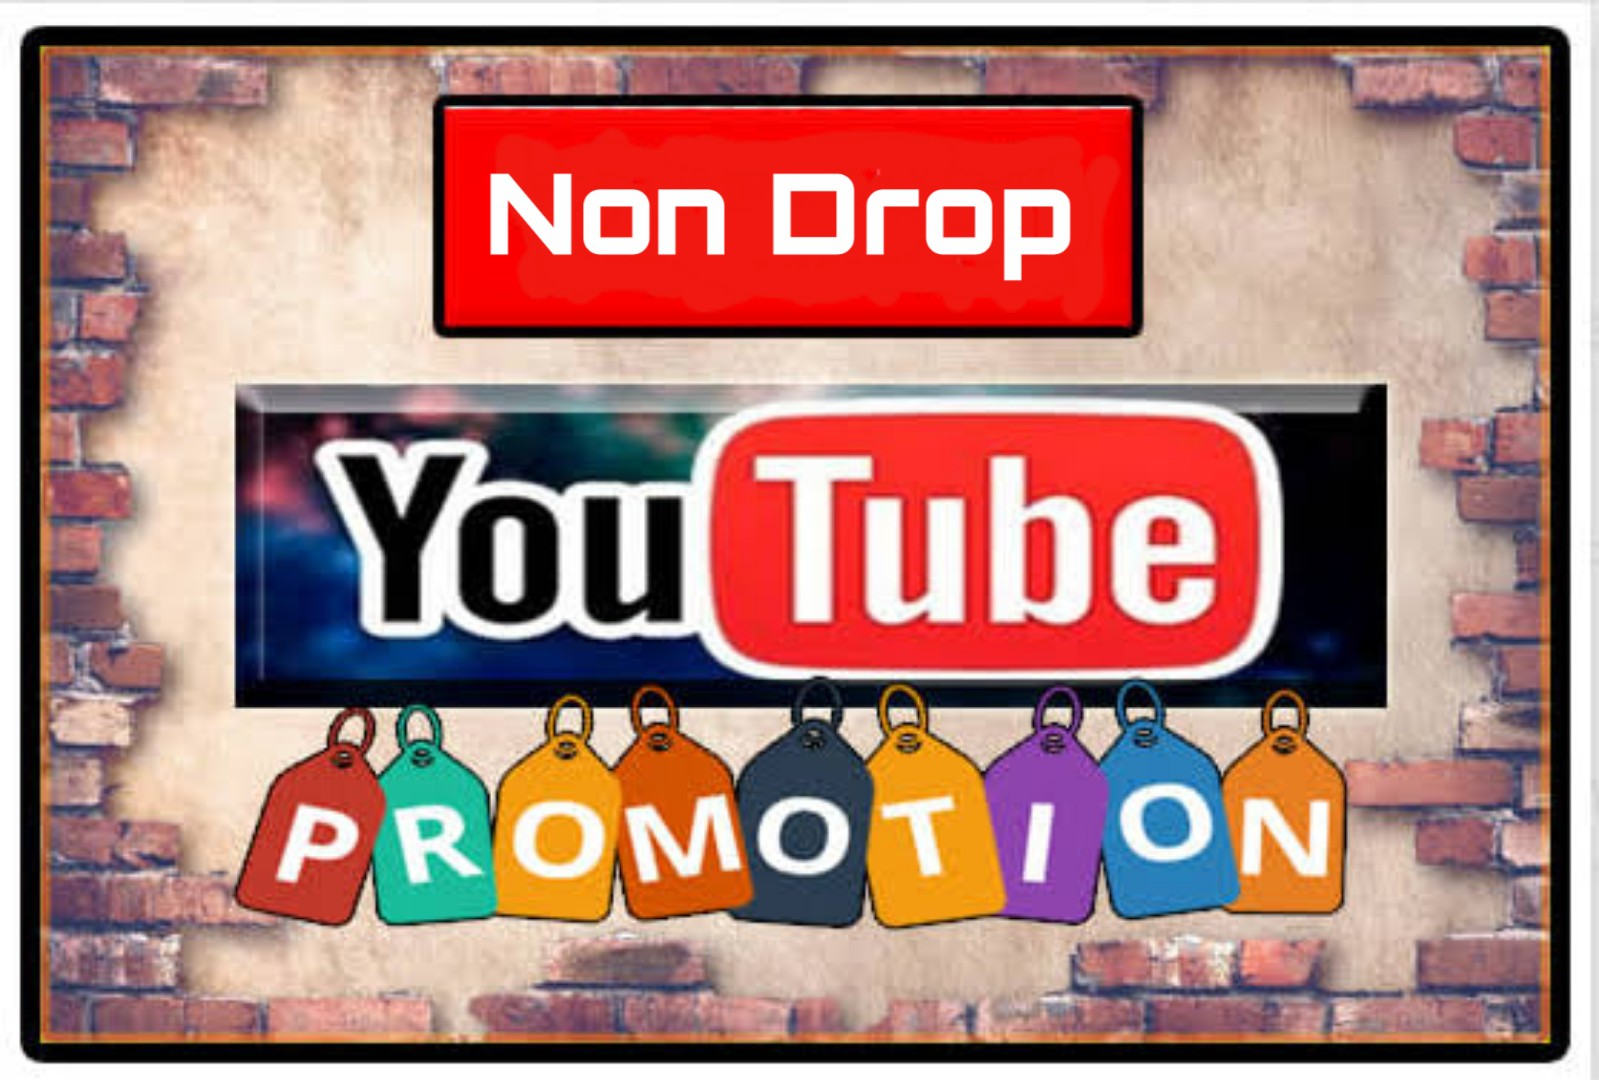 You tube Marketing Video Promotion Life time